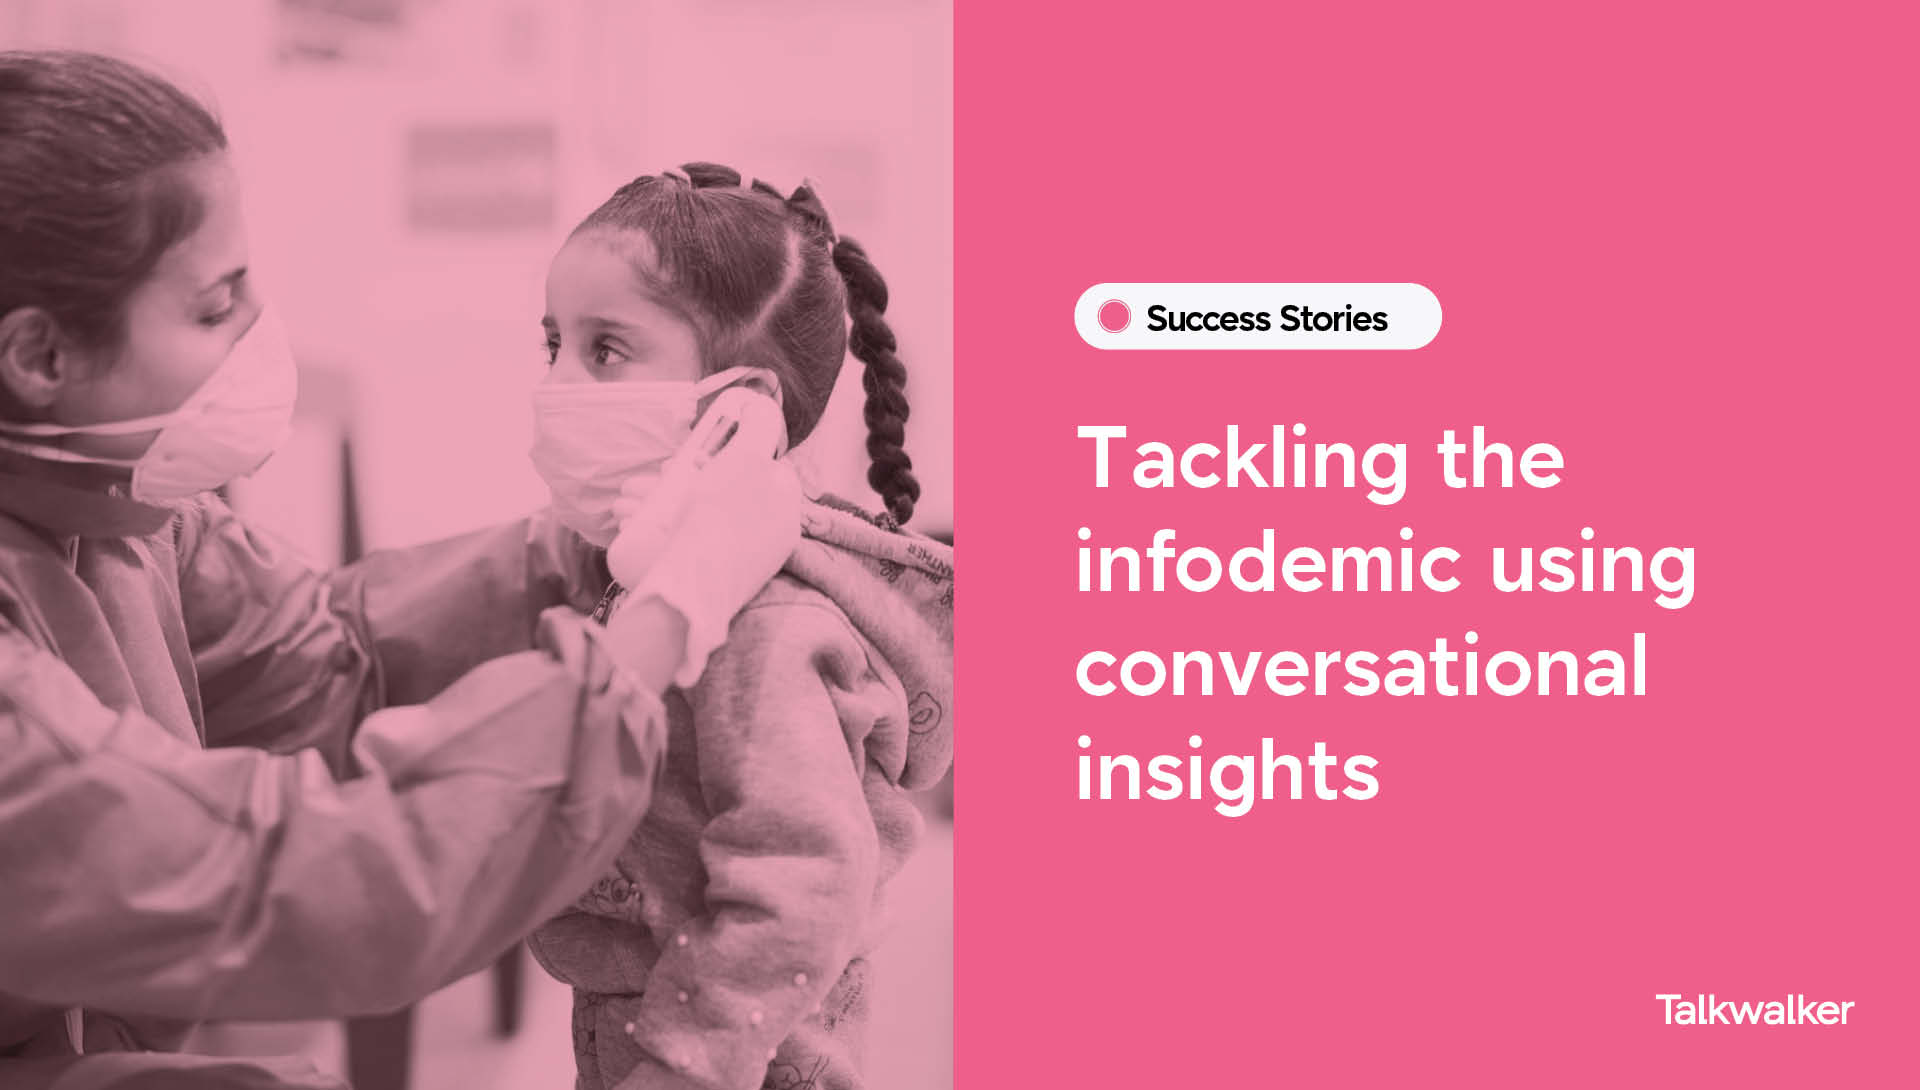 Tackling the infodemic using conversational insights - Case Study of UNICEF Response in MENA